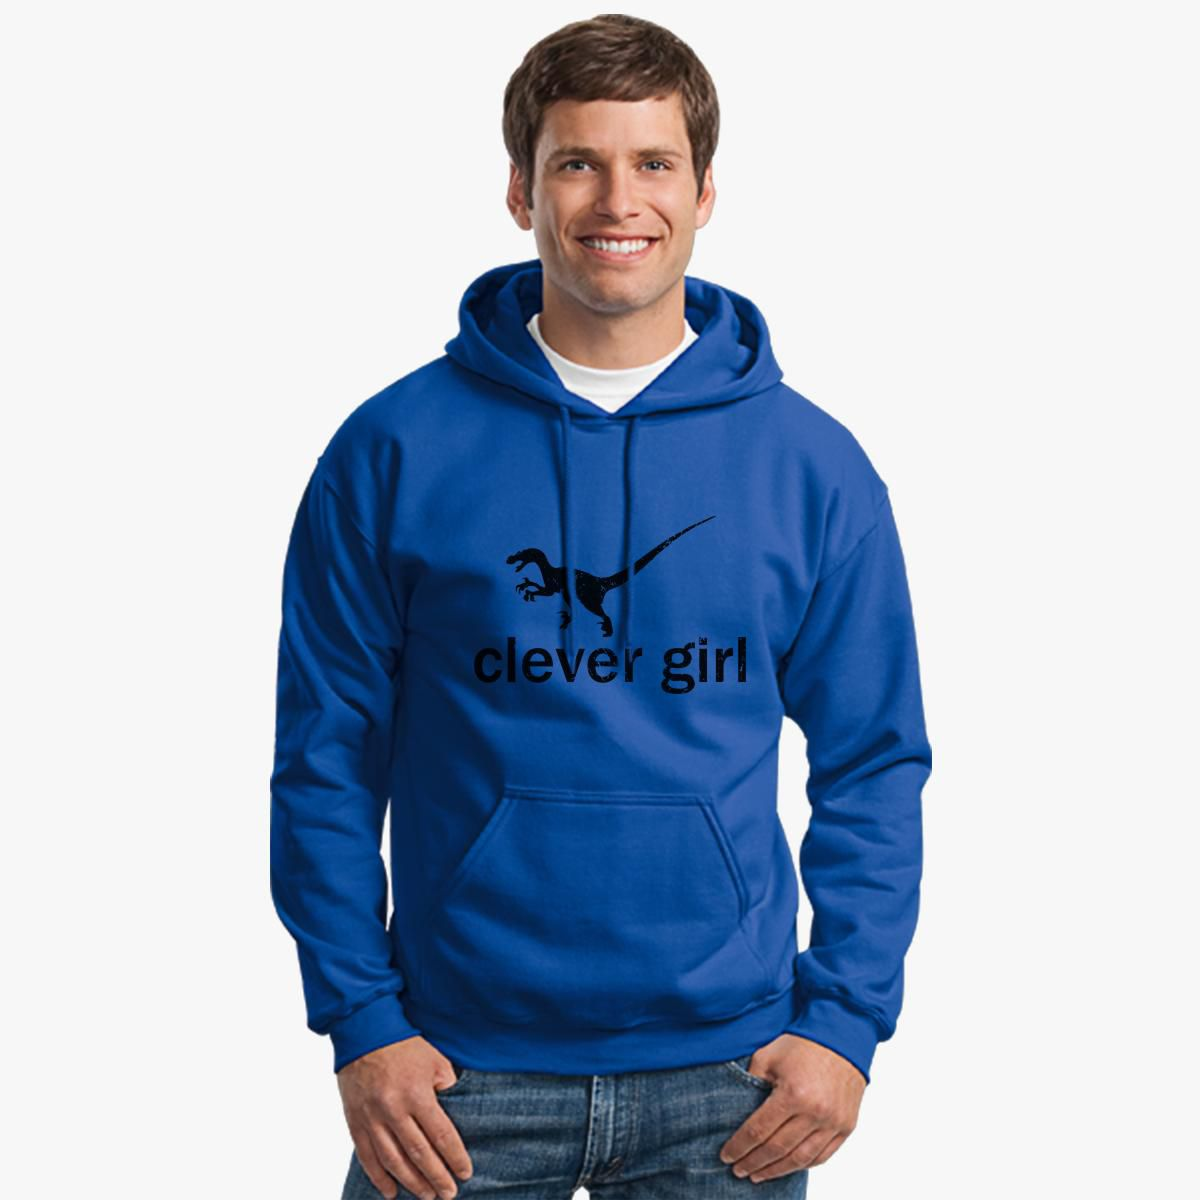 Clever Girl Blue: Clever Girl 2 Unisex Hoodie